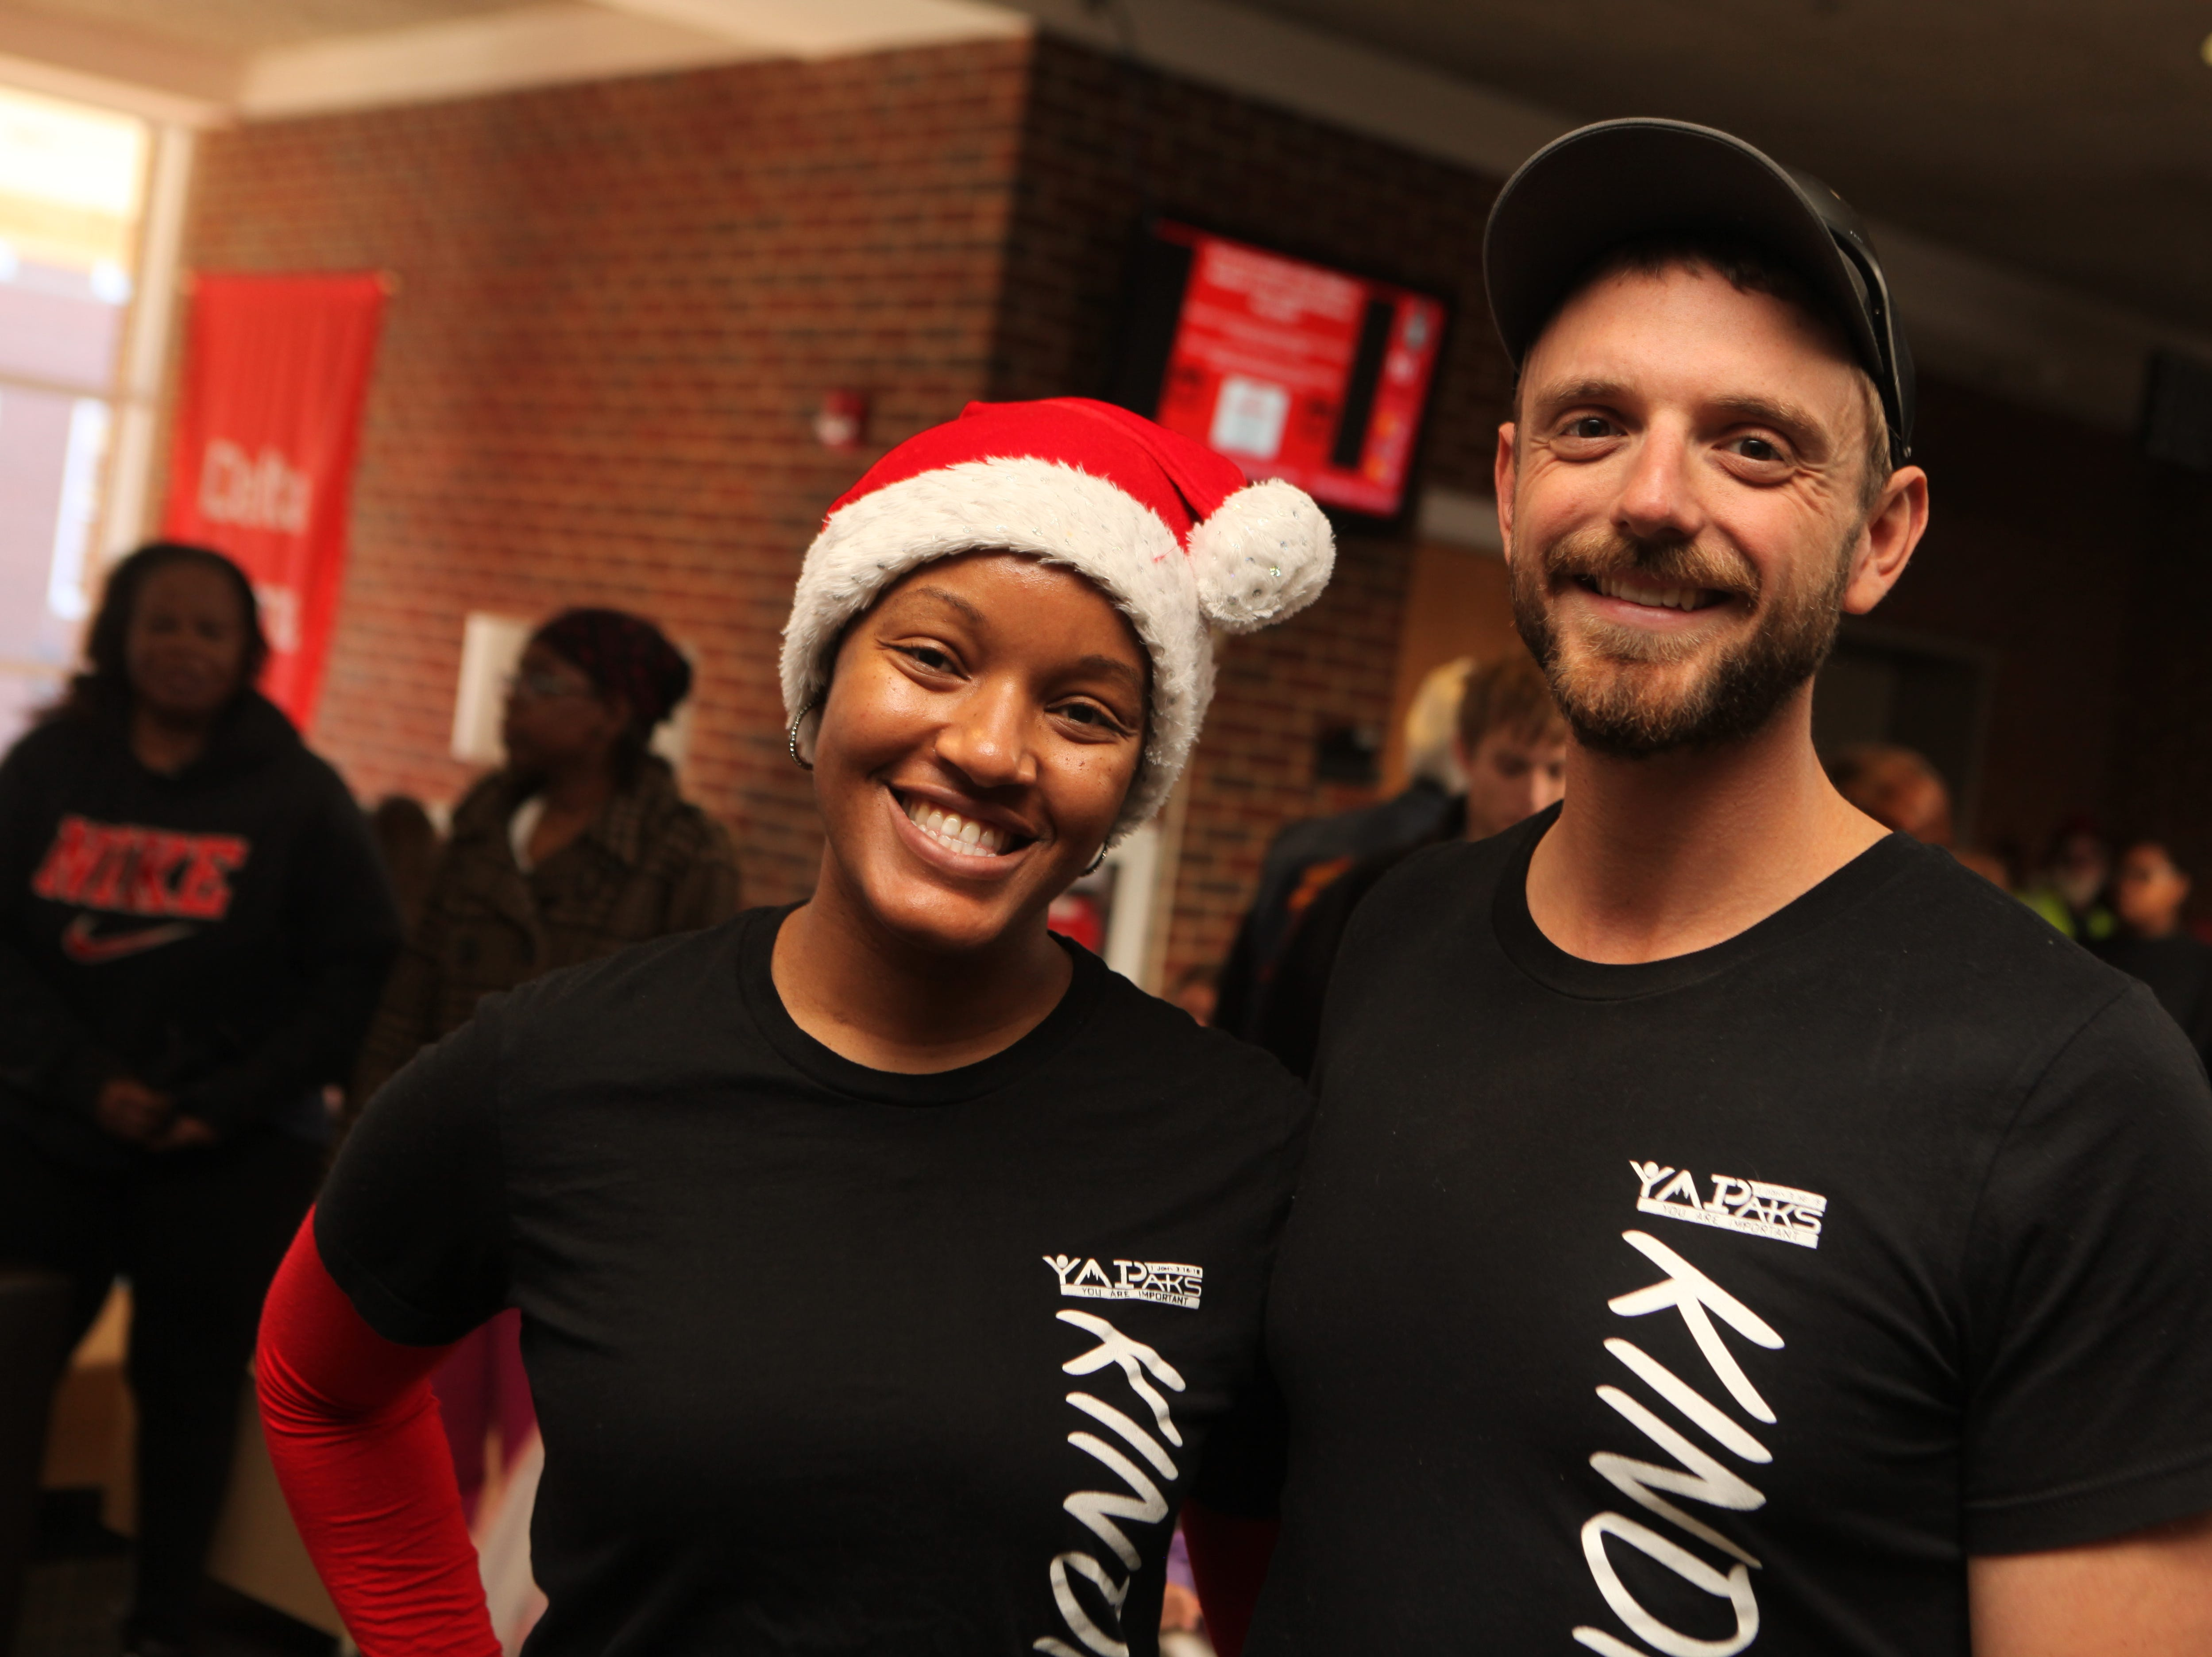 Hundreds attended Radical Mission's annual Warm Souls event at APSU's Morgan University Center on Christmas Eve, Dec. 24, 2018.